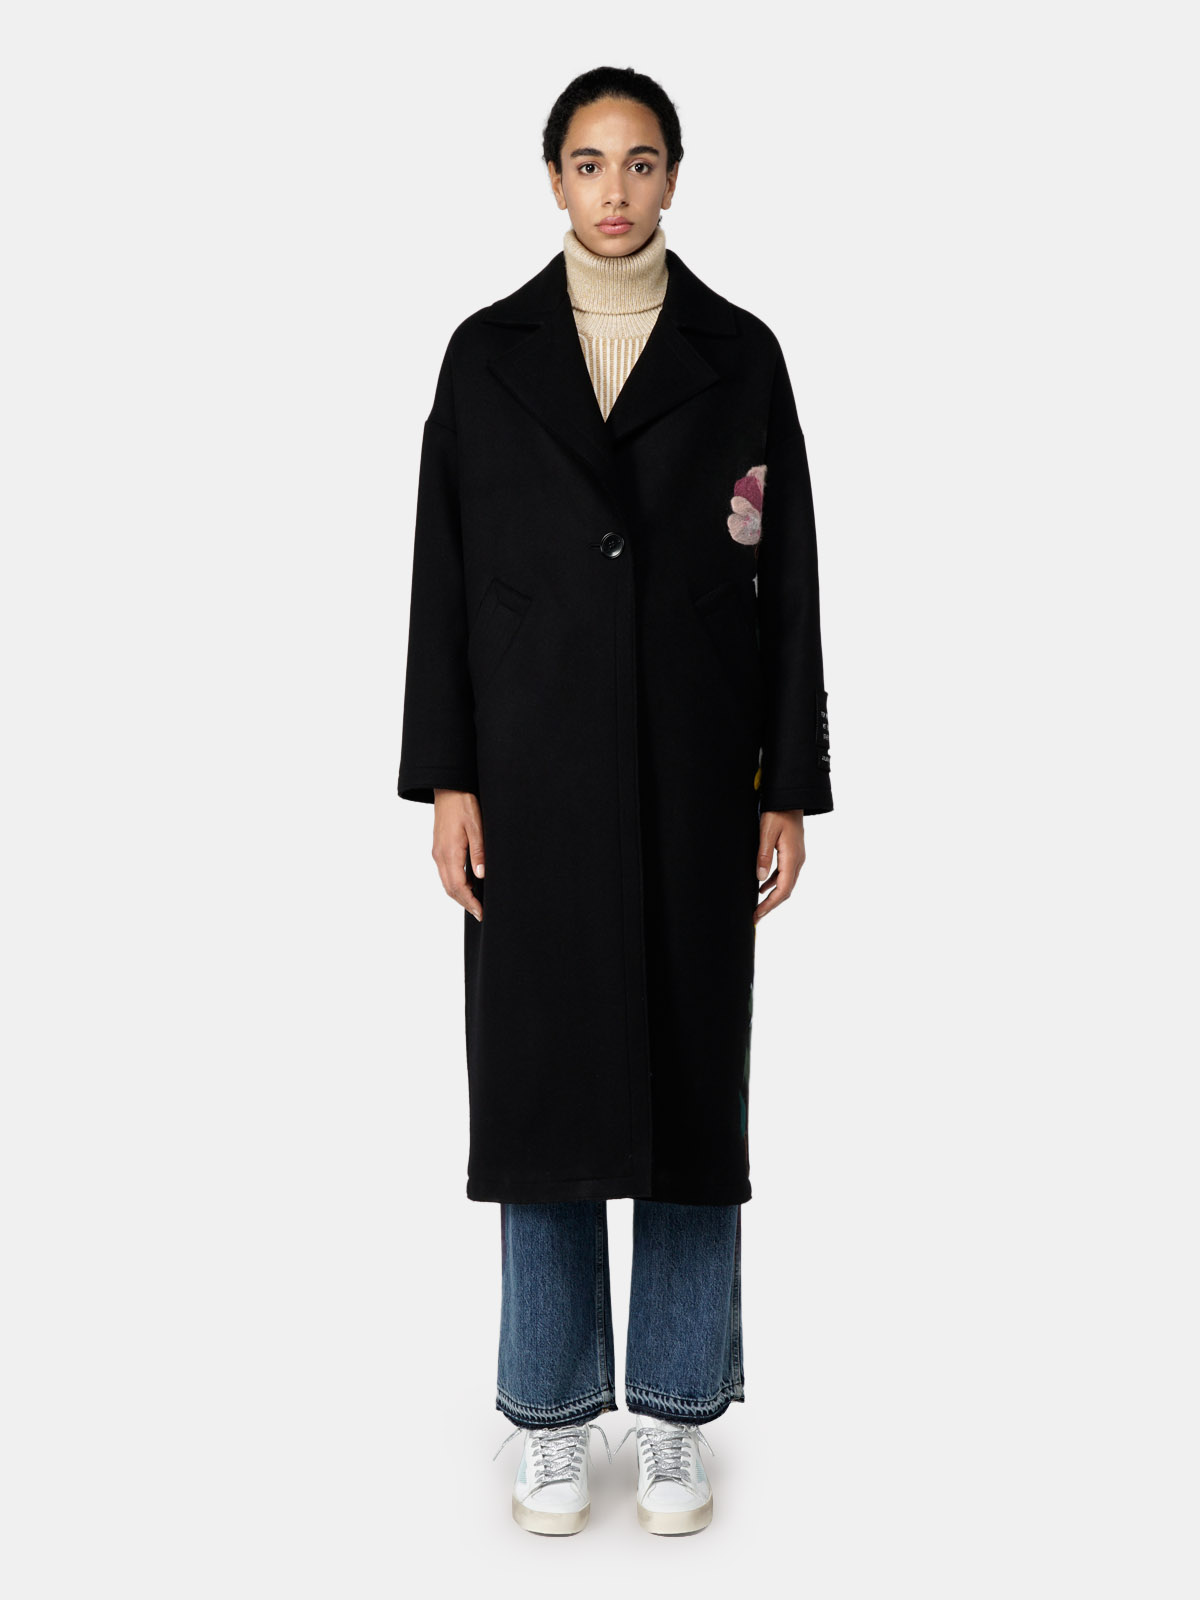 Golden Goose - Bertina black coat with embroidered flowers in